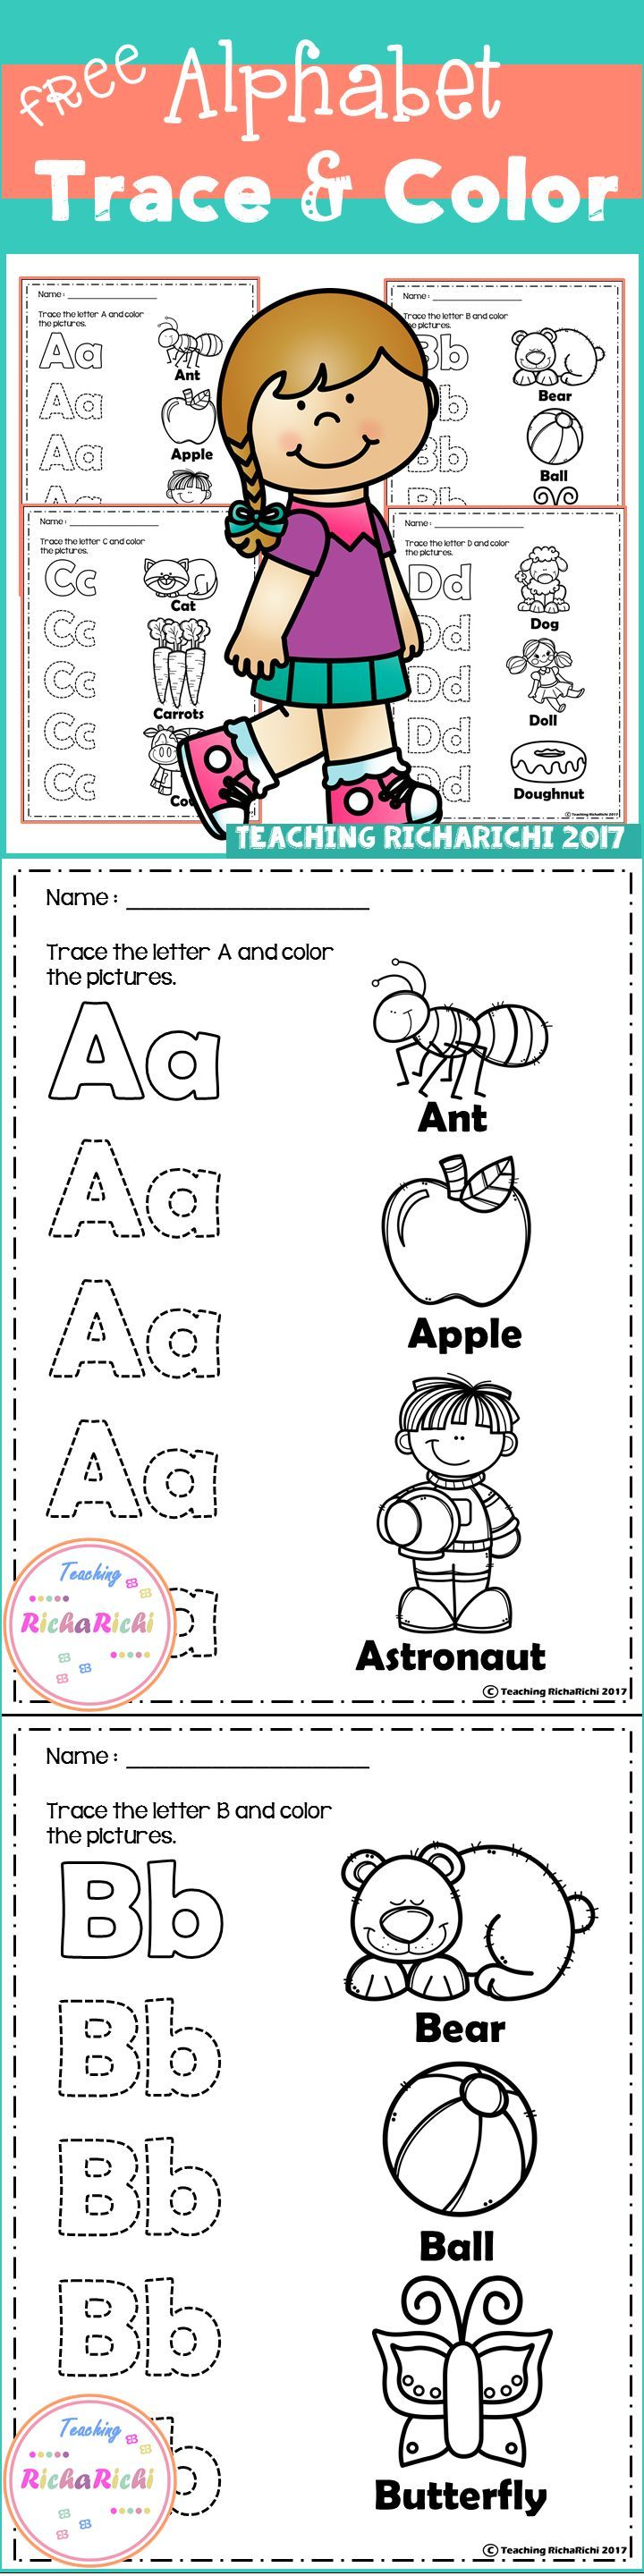 worksheet Pre K Sight Words Worksheets 1000 ideas about pre k sight words on pinterest freebies printables worksheet prep patricks reading spring christmas tpt thanksgiving holiday